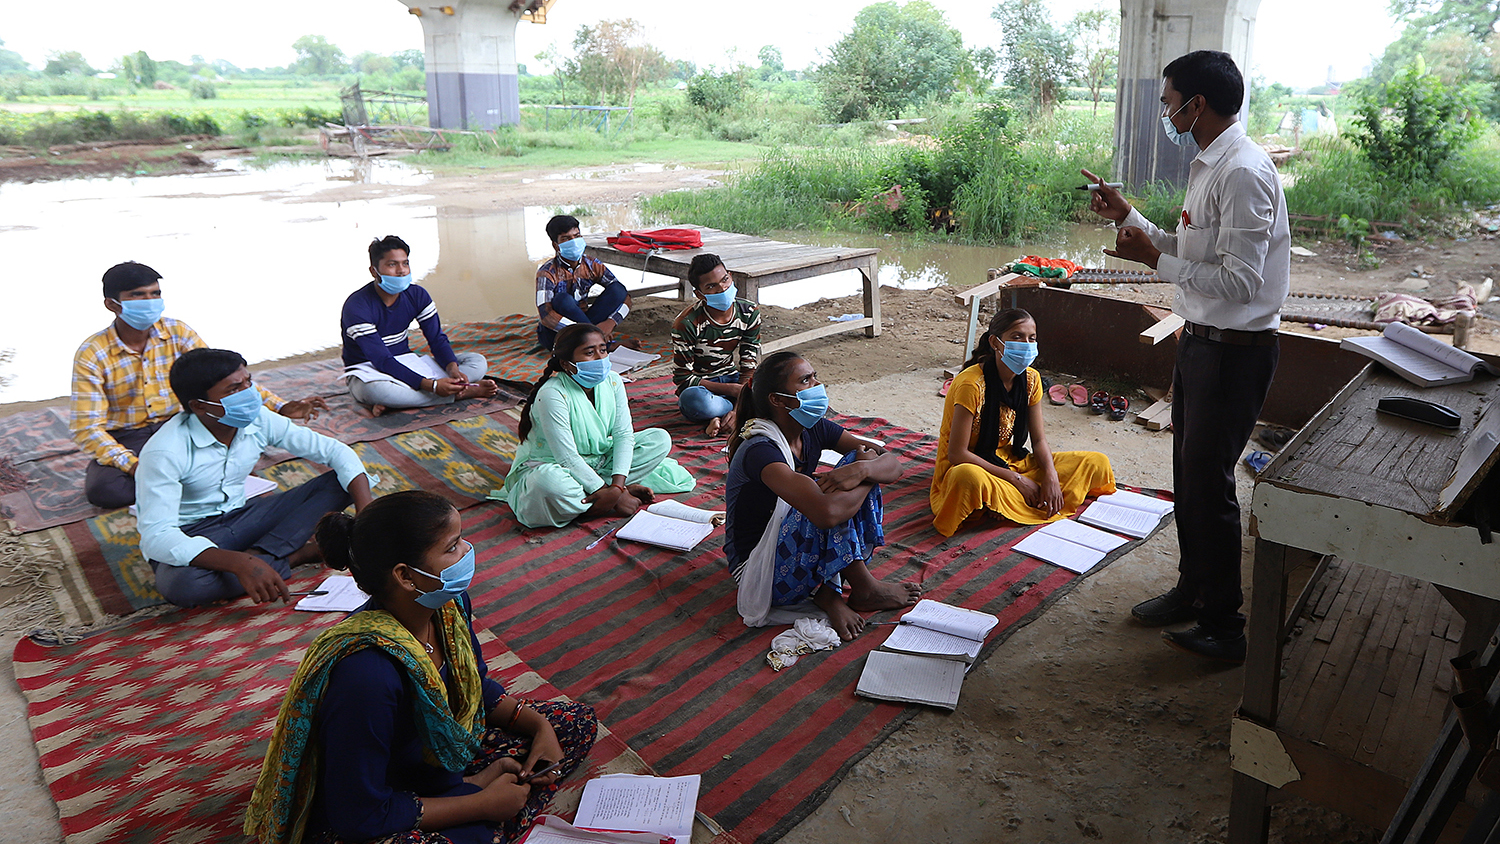 A college student teacher conducts open-air classes in a slum for underprivileged students who lack electronic devices to attend online classes as schools remain closed in New Delhi on July 20.